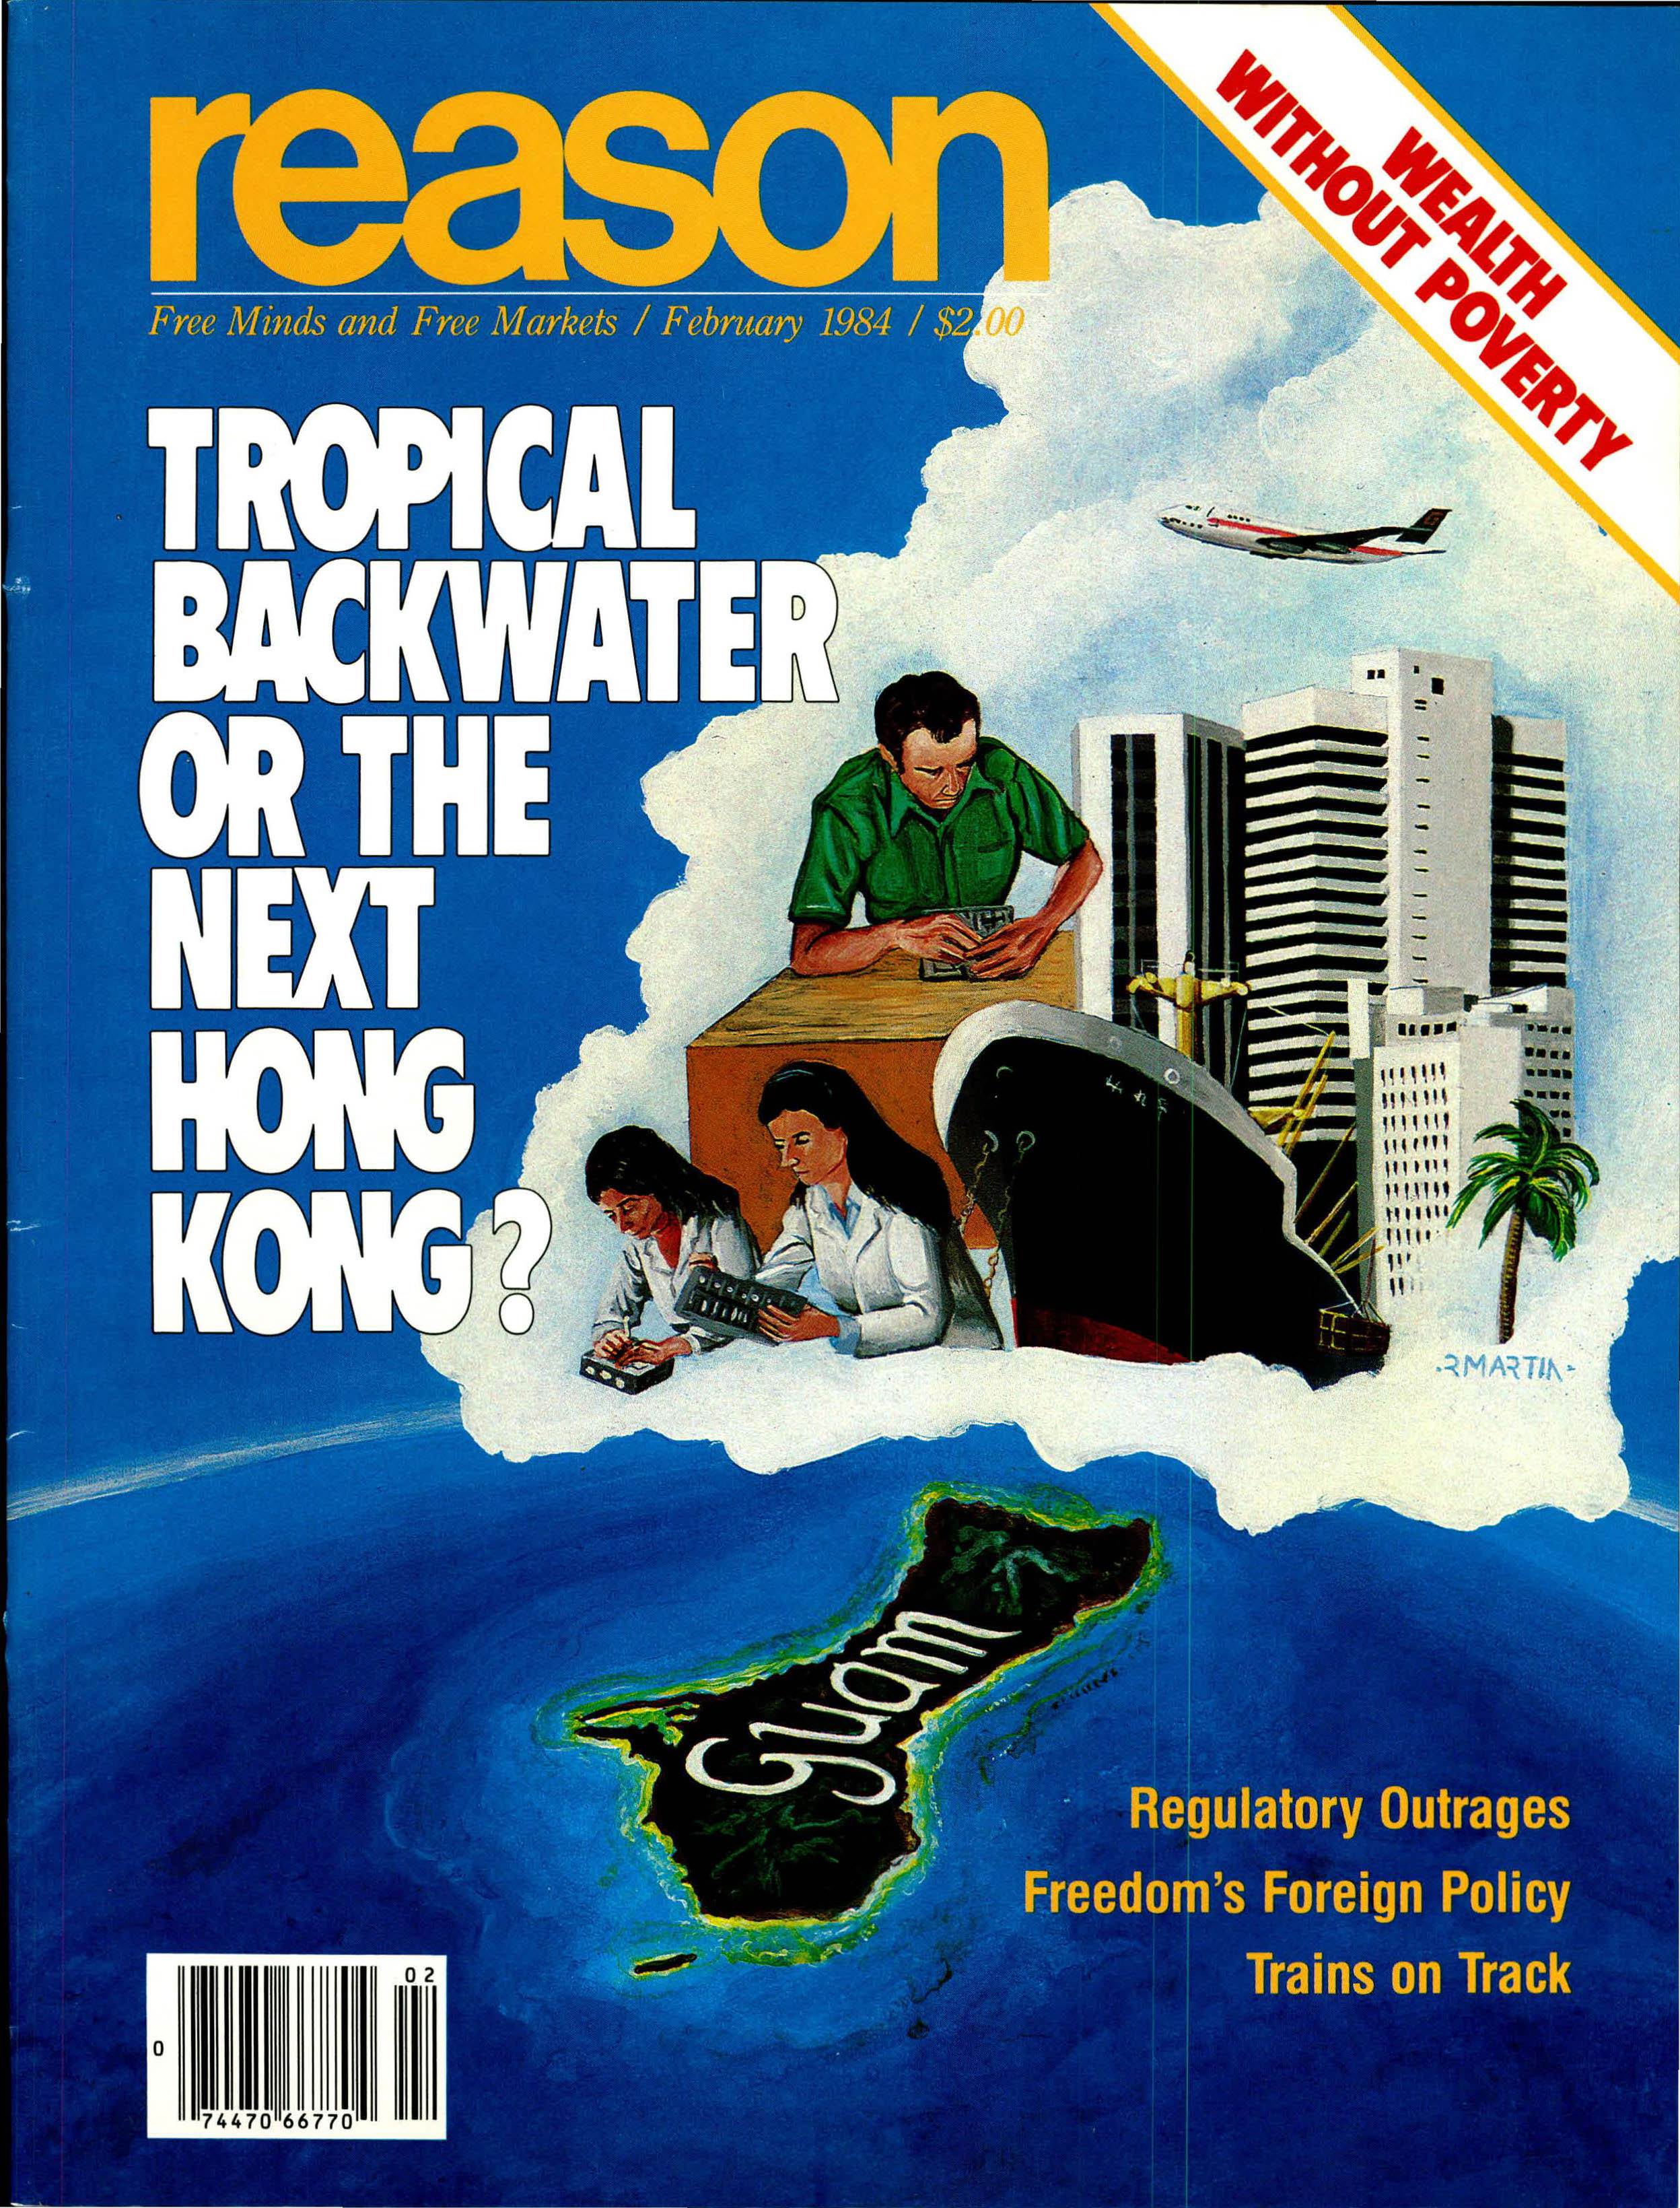 Reason Magazine, February 1984 cover image